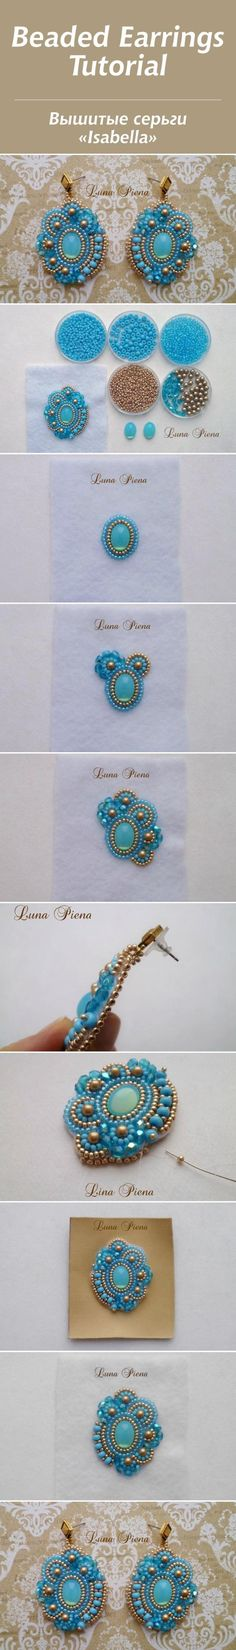 """Мастер-класс: вышитые серьги """"Isabella"""" Prob don't know enough about beading to figure this out; Jewelry Making Tutorials, Beading Tutorials, Embroidery Jewelry, Beaded Embroidery, Jewelry Patterns, Beading Patterns, Kumihimo Bracelet, Bead Embroidery Tutorial, Beaded Jewelry"""